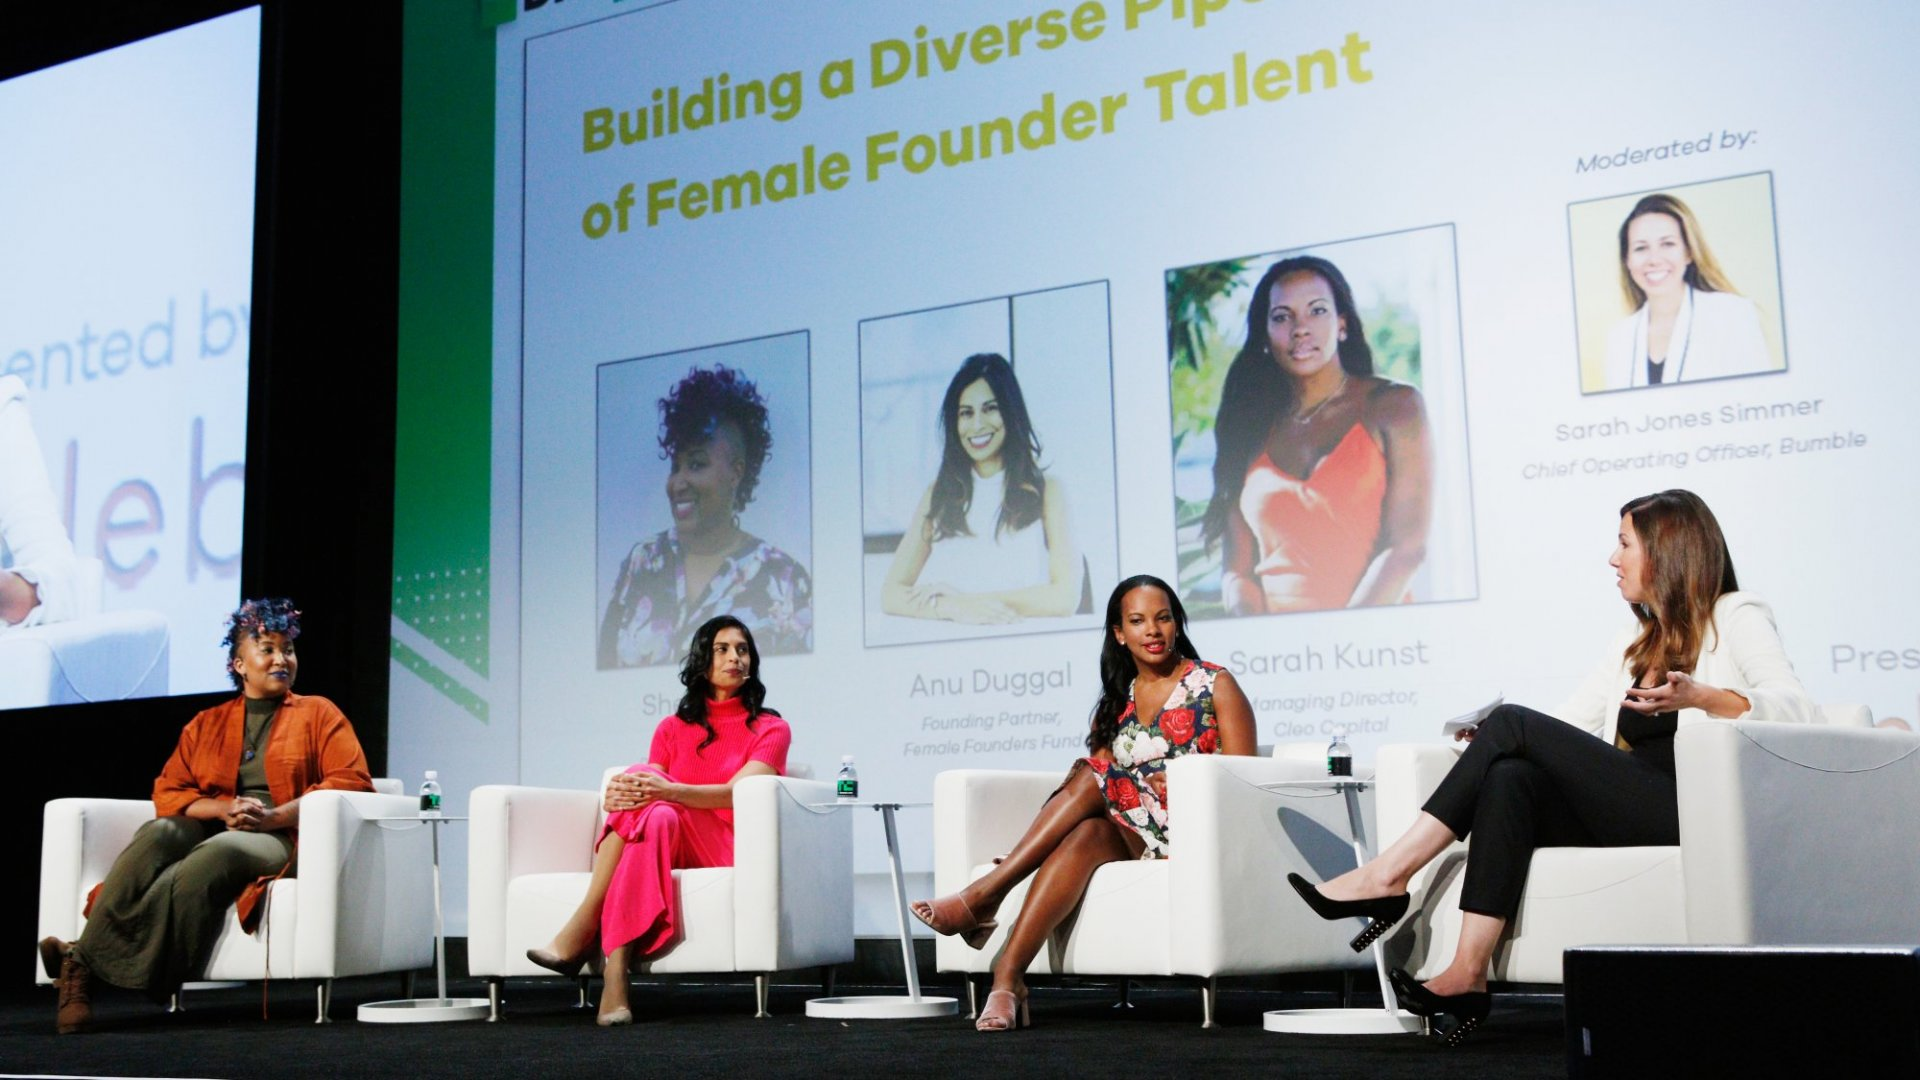 5 Critical Things Female Founders Need to Launch a Successful Startup